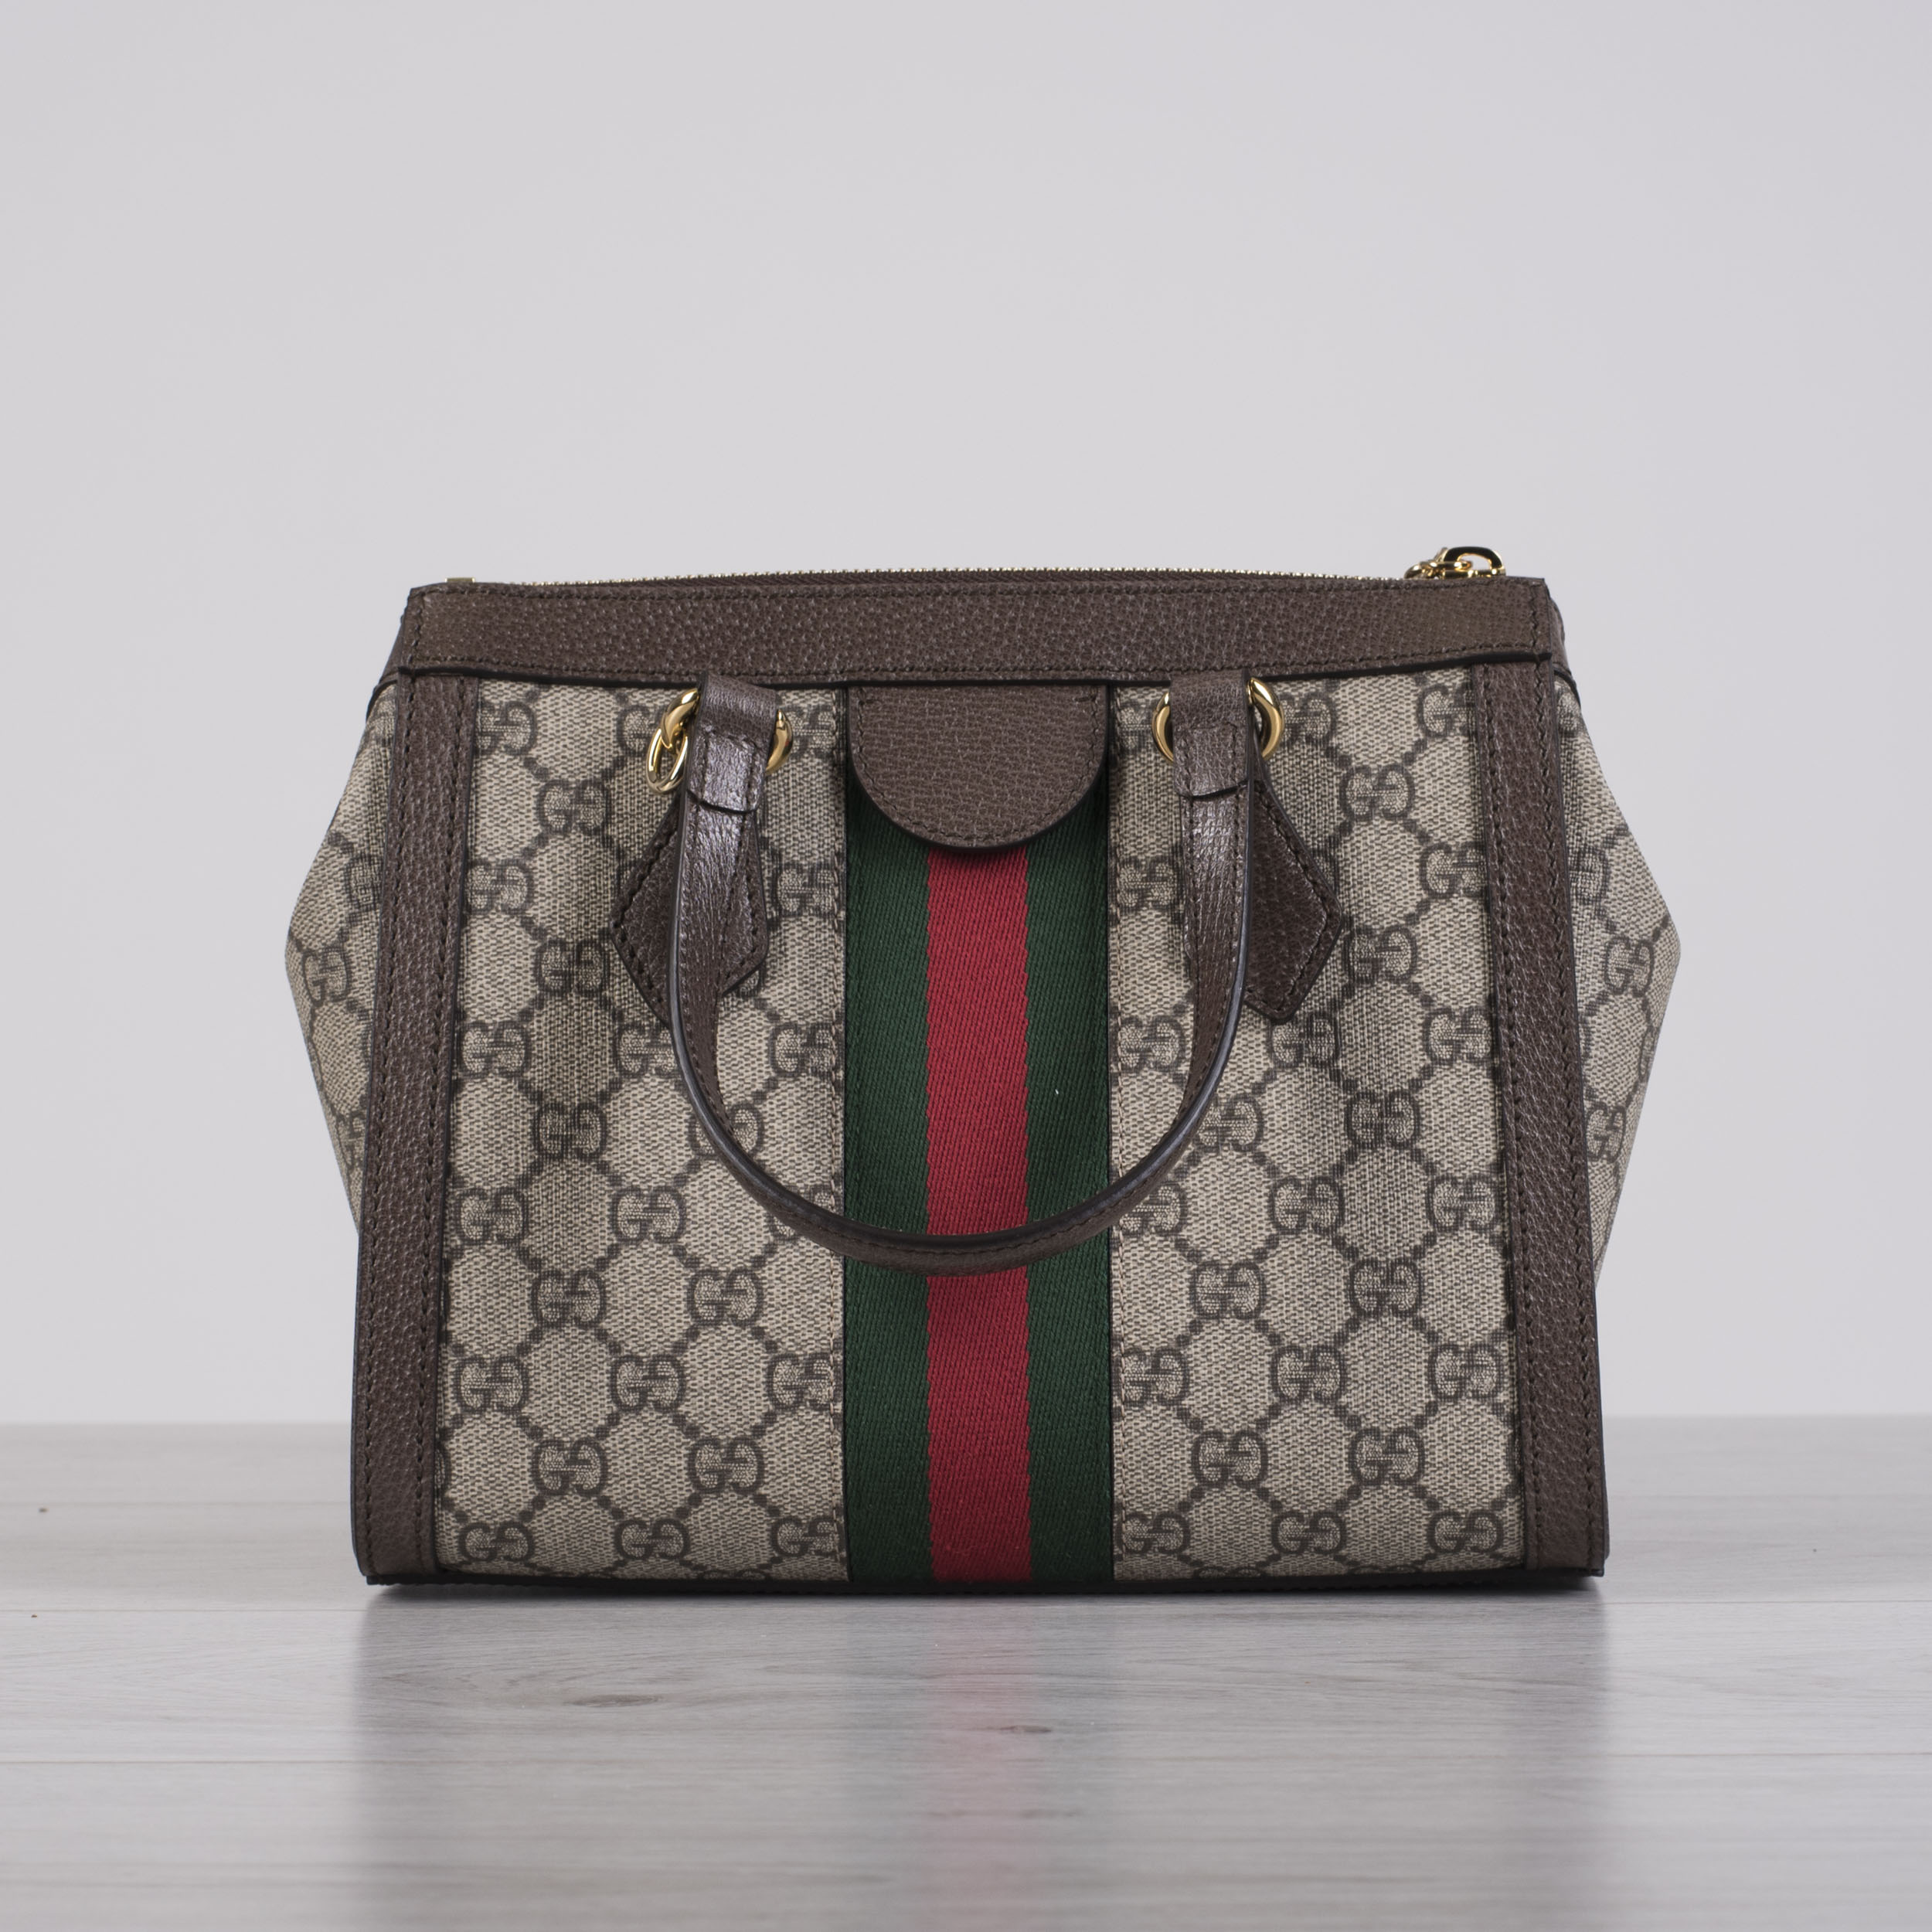 dd306ef37 Details about GUCCI 1790$ Small Ophidia GG Tote Bag In Beige/Ebony GG  Supreme Canvas